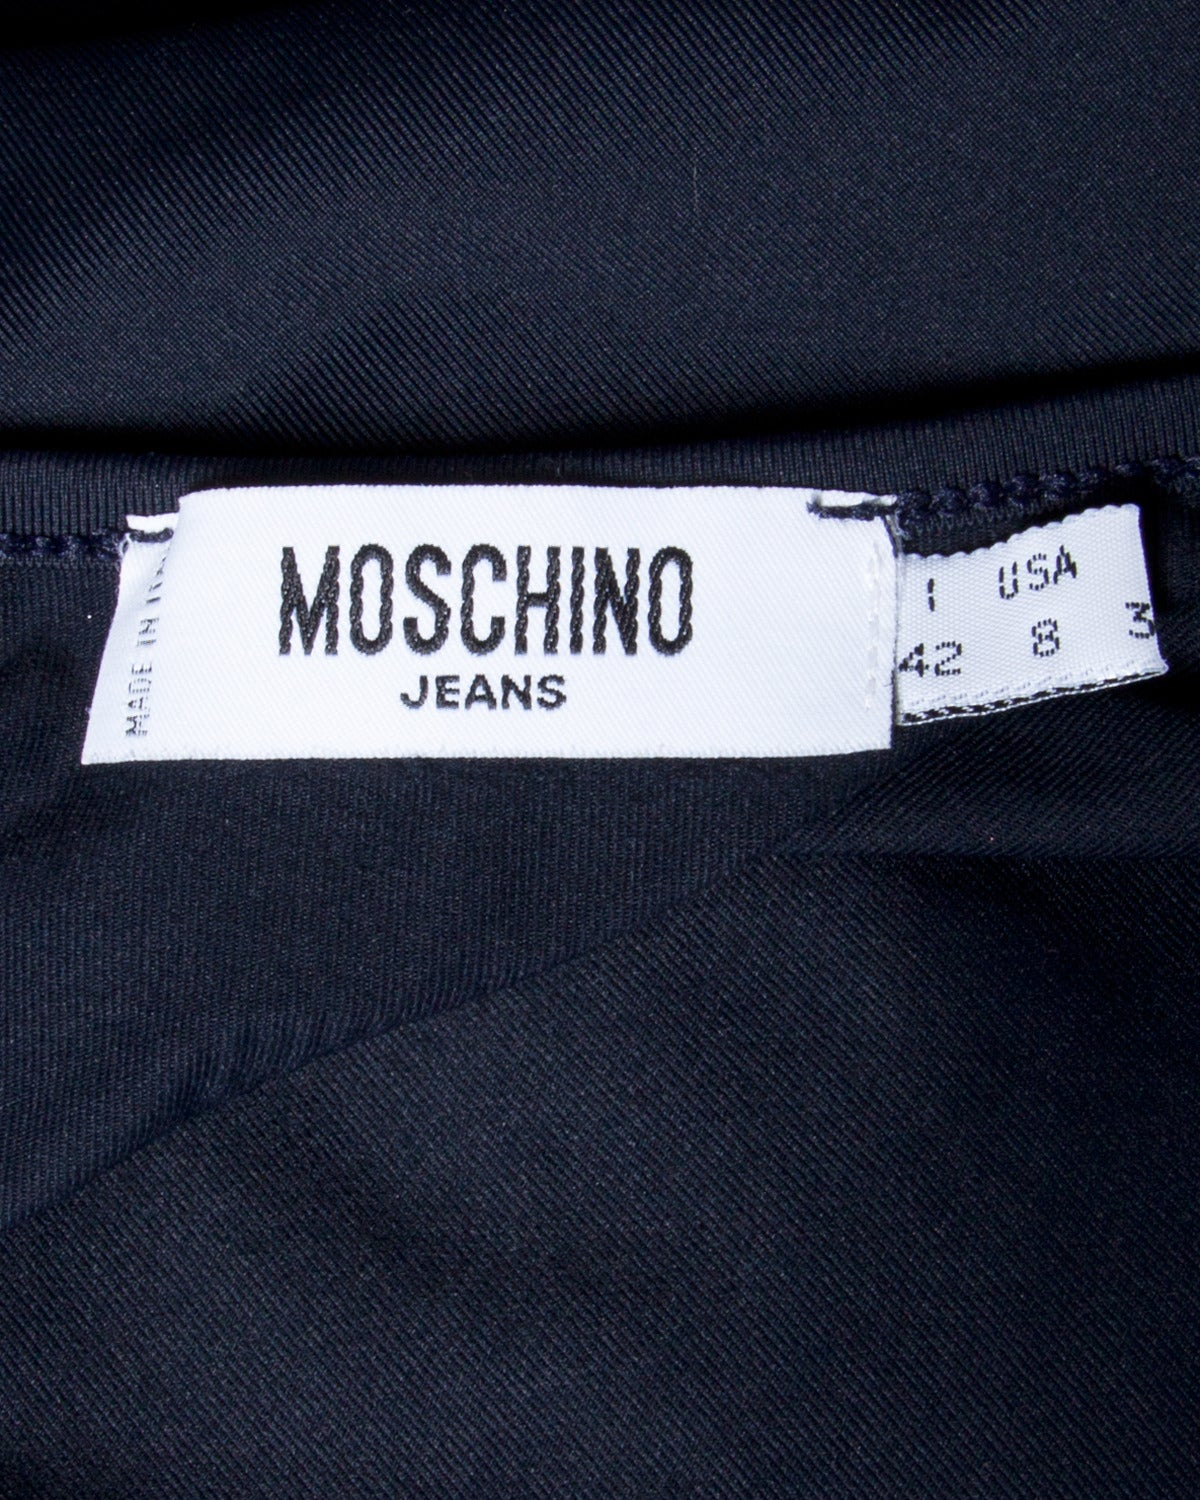 "Moschino Jeans ""2000 so what?"" Y2K Millennium Maxi Dress For Sale 2"